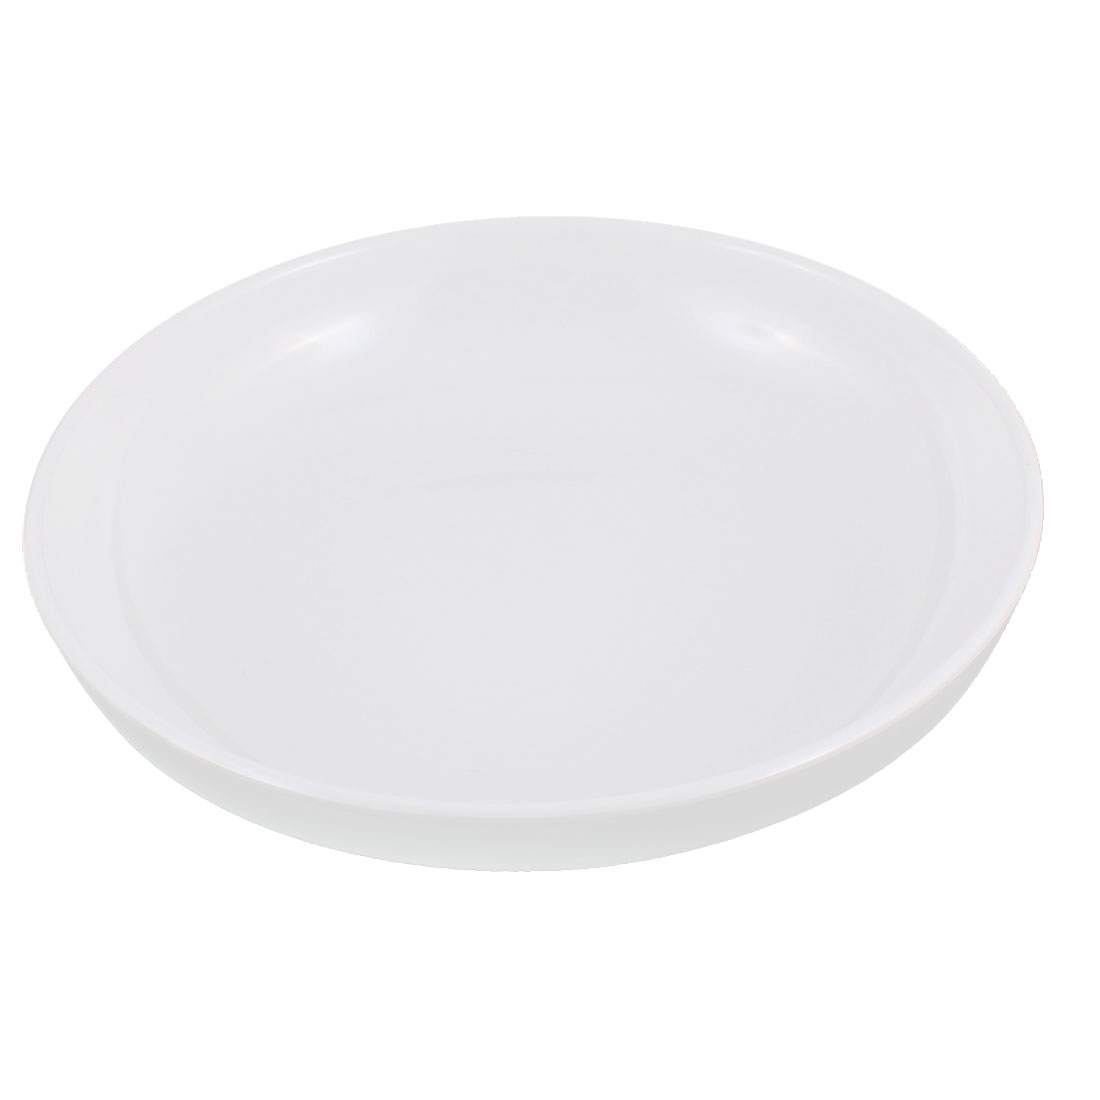 "Kitchen Round Shape Dinner Dish Container Plate White 7"" Dia"